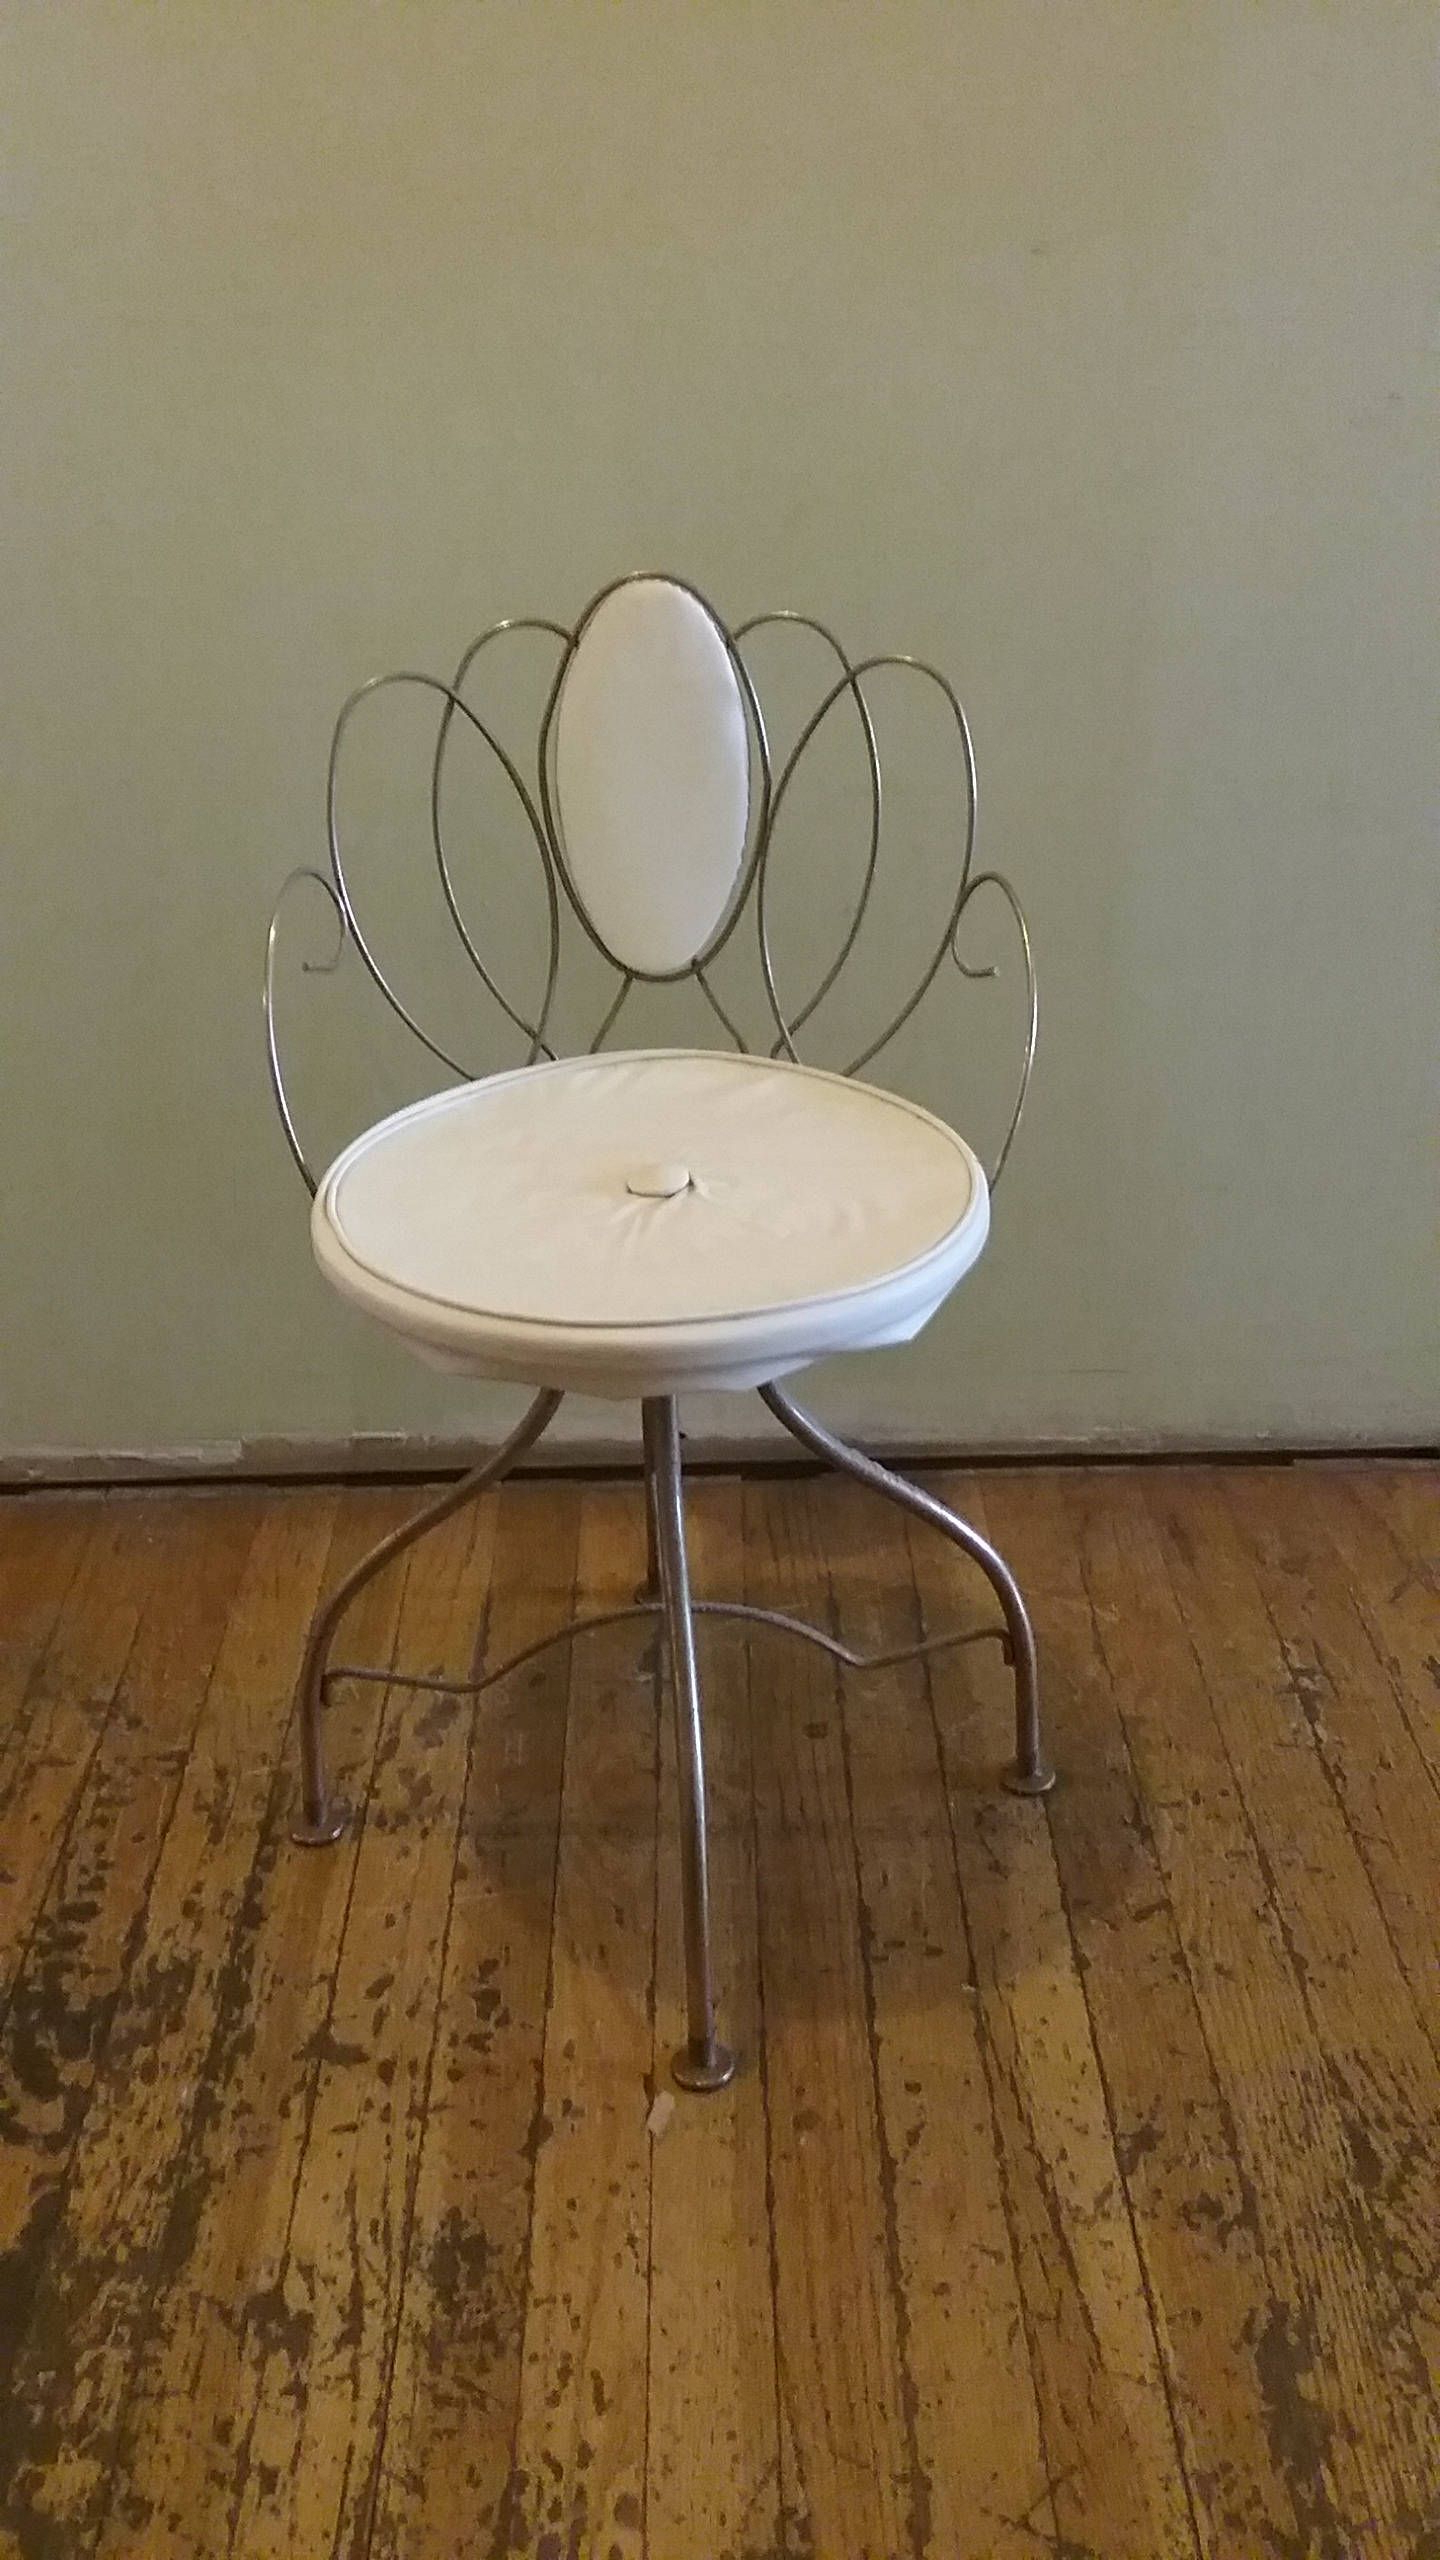 Vintage Vanity Chair, Lakewood Chicago Vintage Metal Chair, Fancy Regarding Famous Spin Rotating Coffee Tables (View 19 of 20)